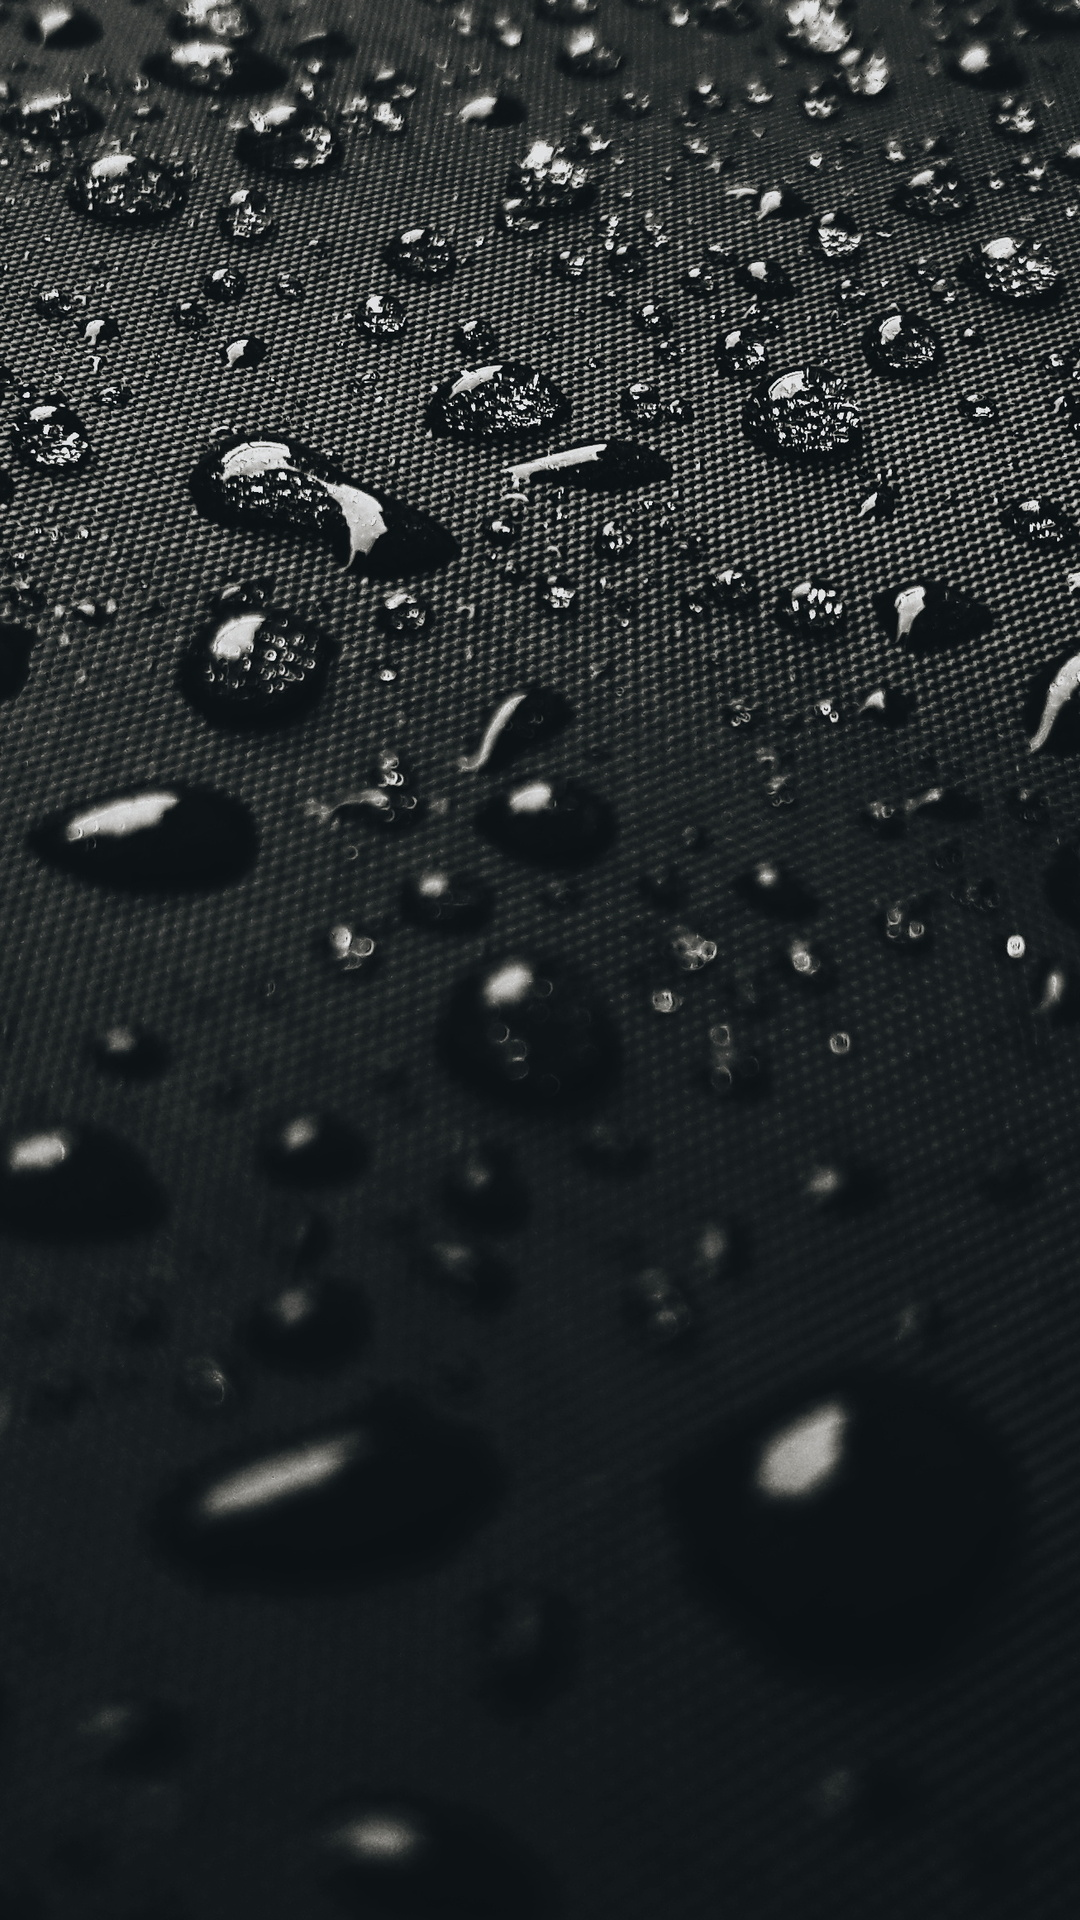 1080x1920 Water Drops On Black Surface 4k Iphone 7,6s,6 ...